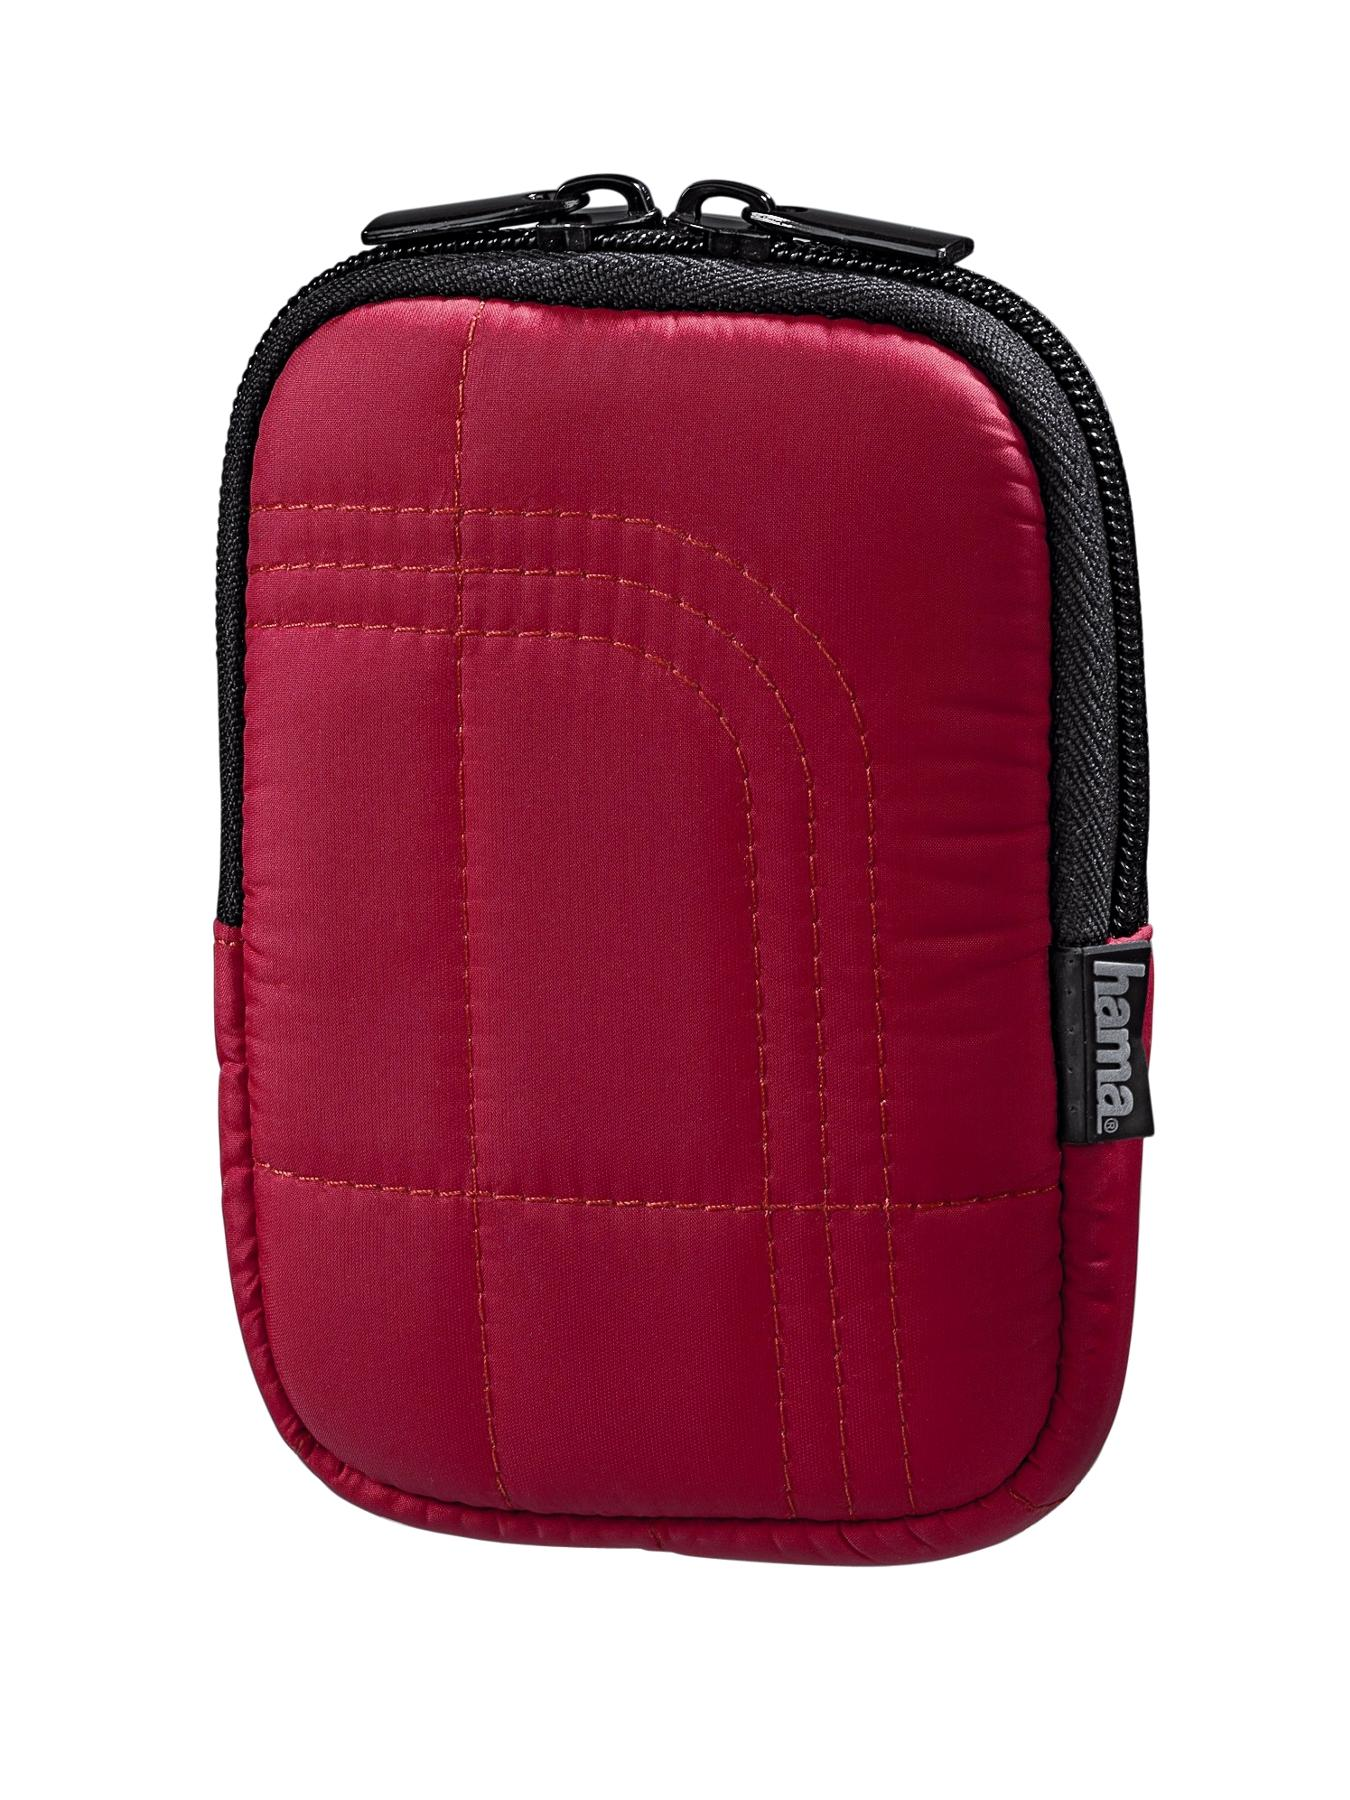 HAMA Fancy Memory 60C Camera Bag - Red at Very, from Littlewoods